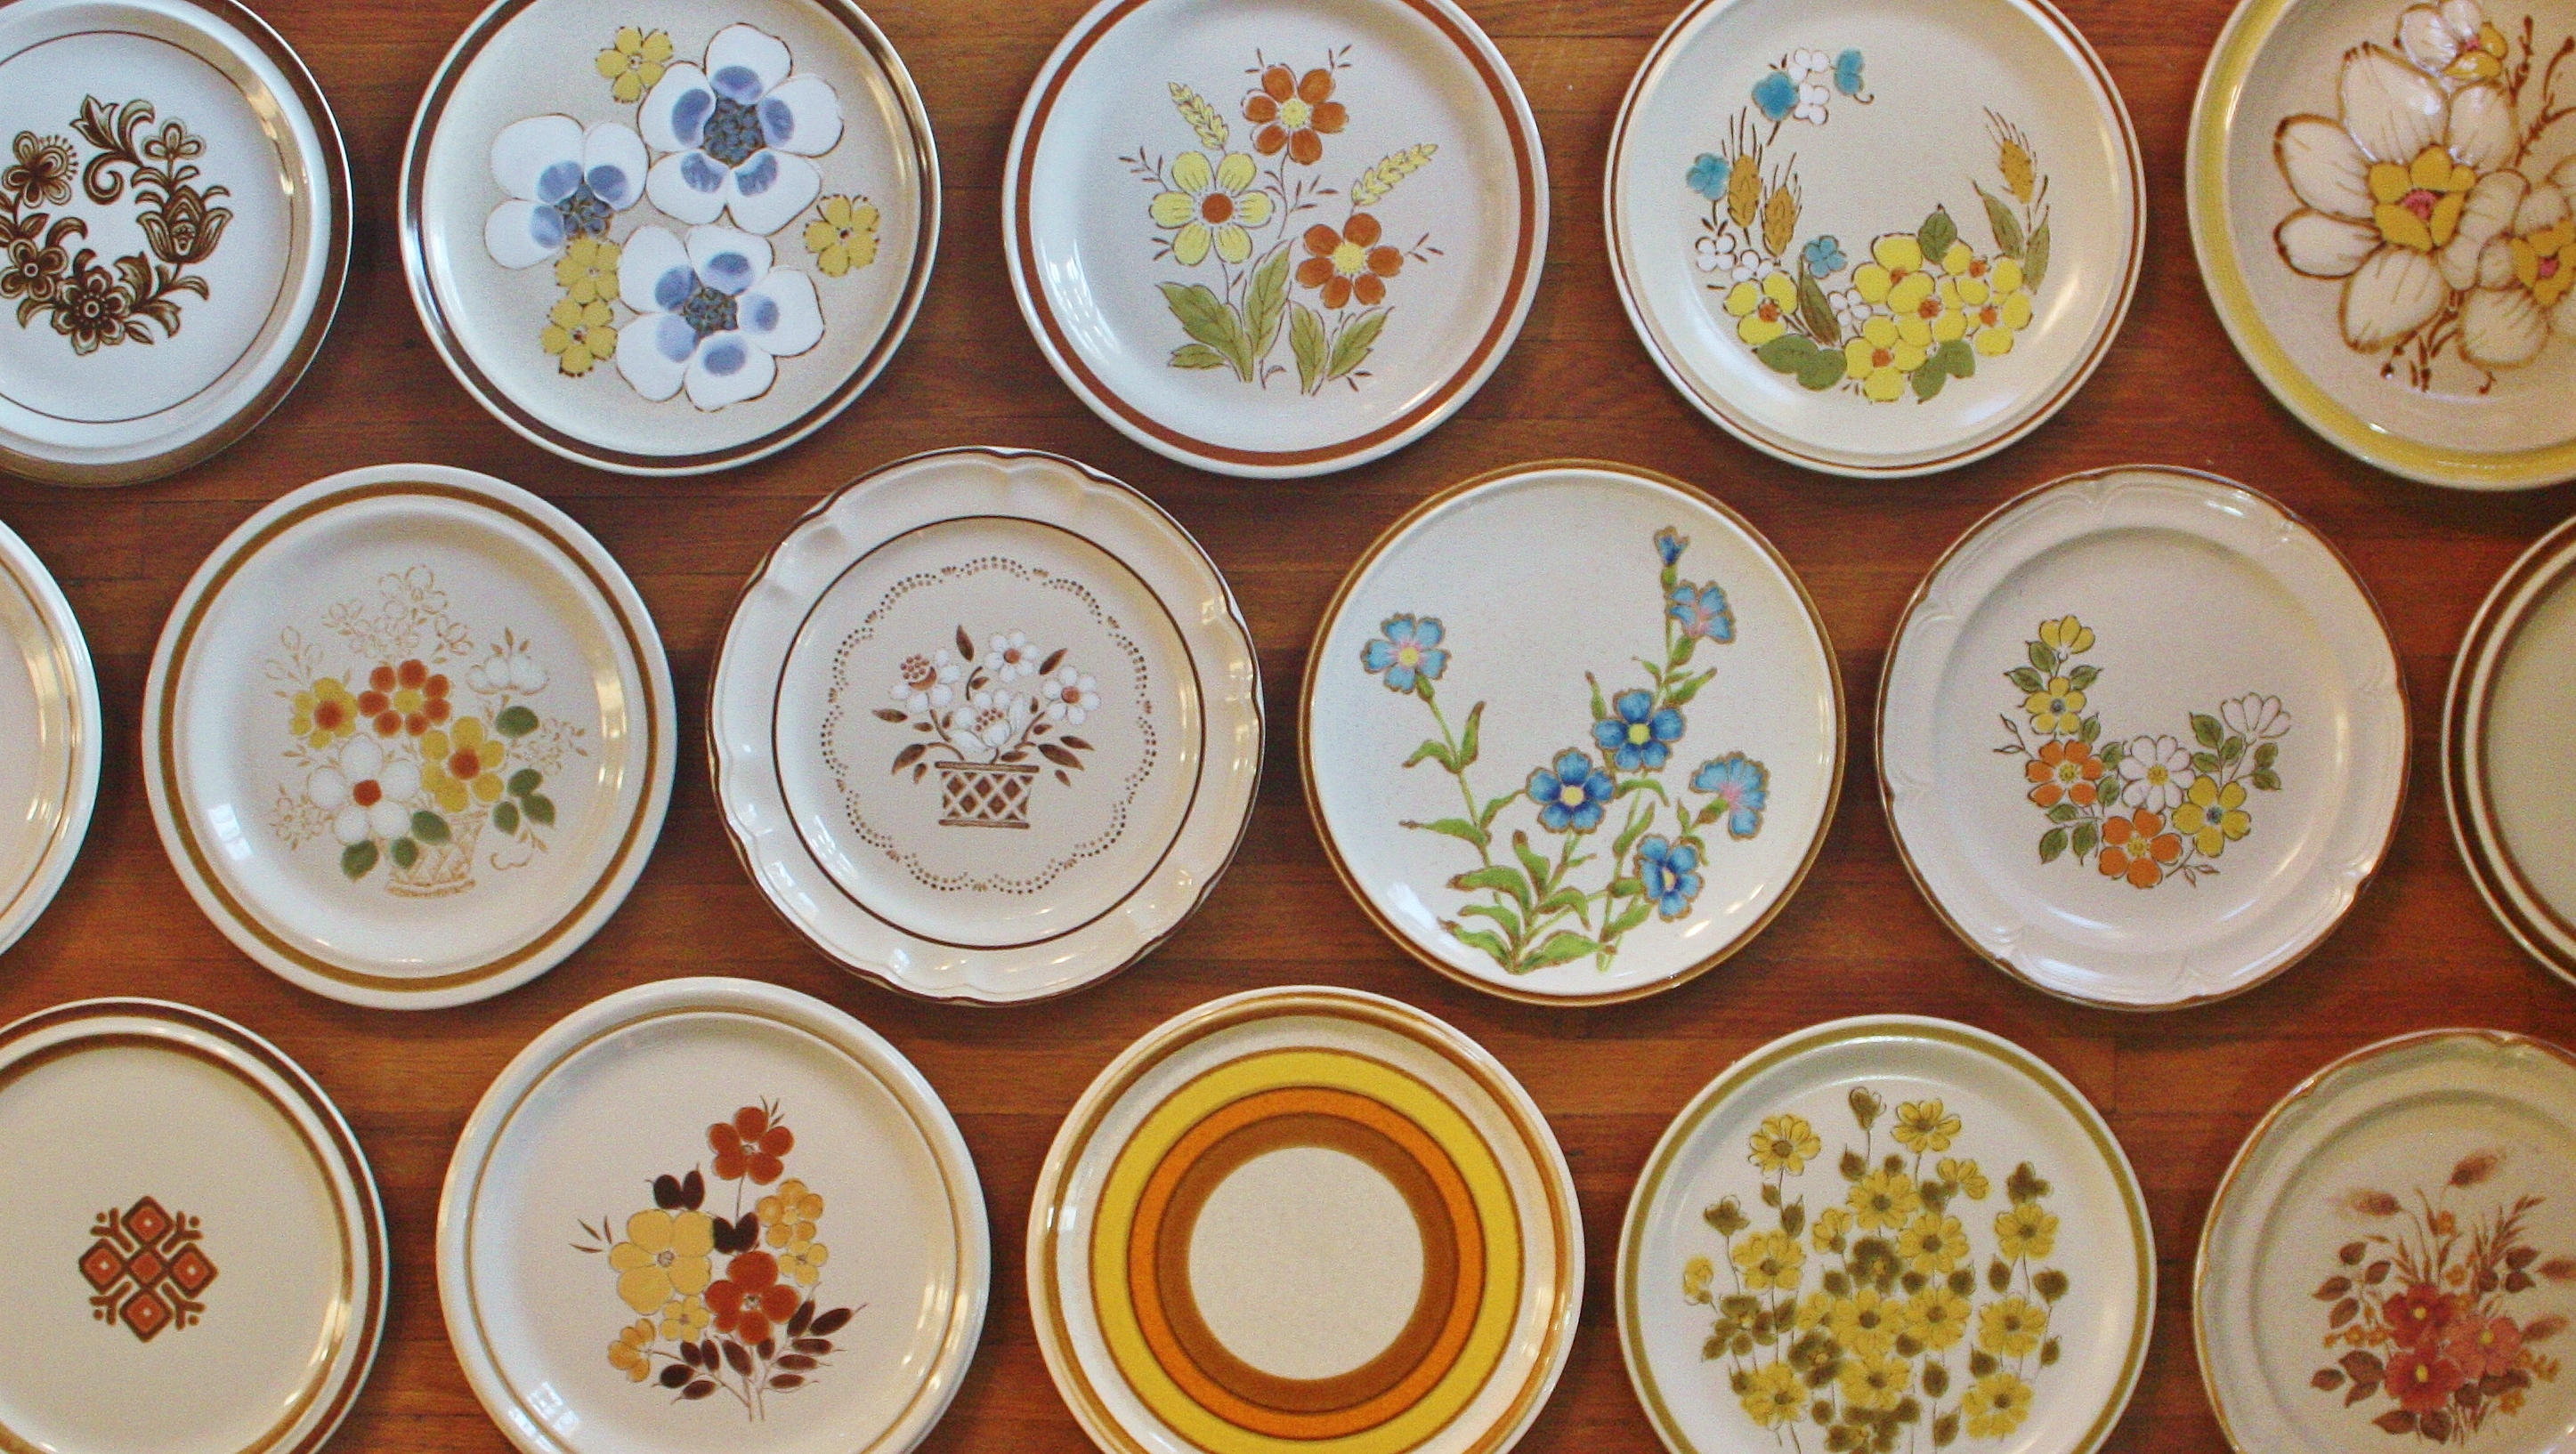 Best stoneware dishes for kitchen and dining sets ideas with stoneware dishes made in usa